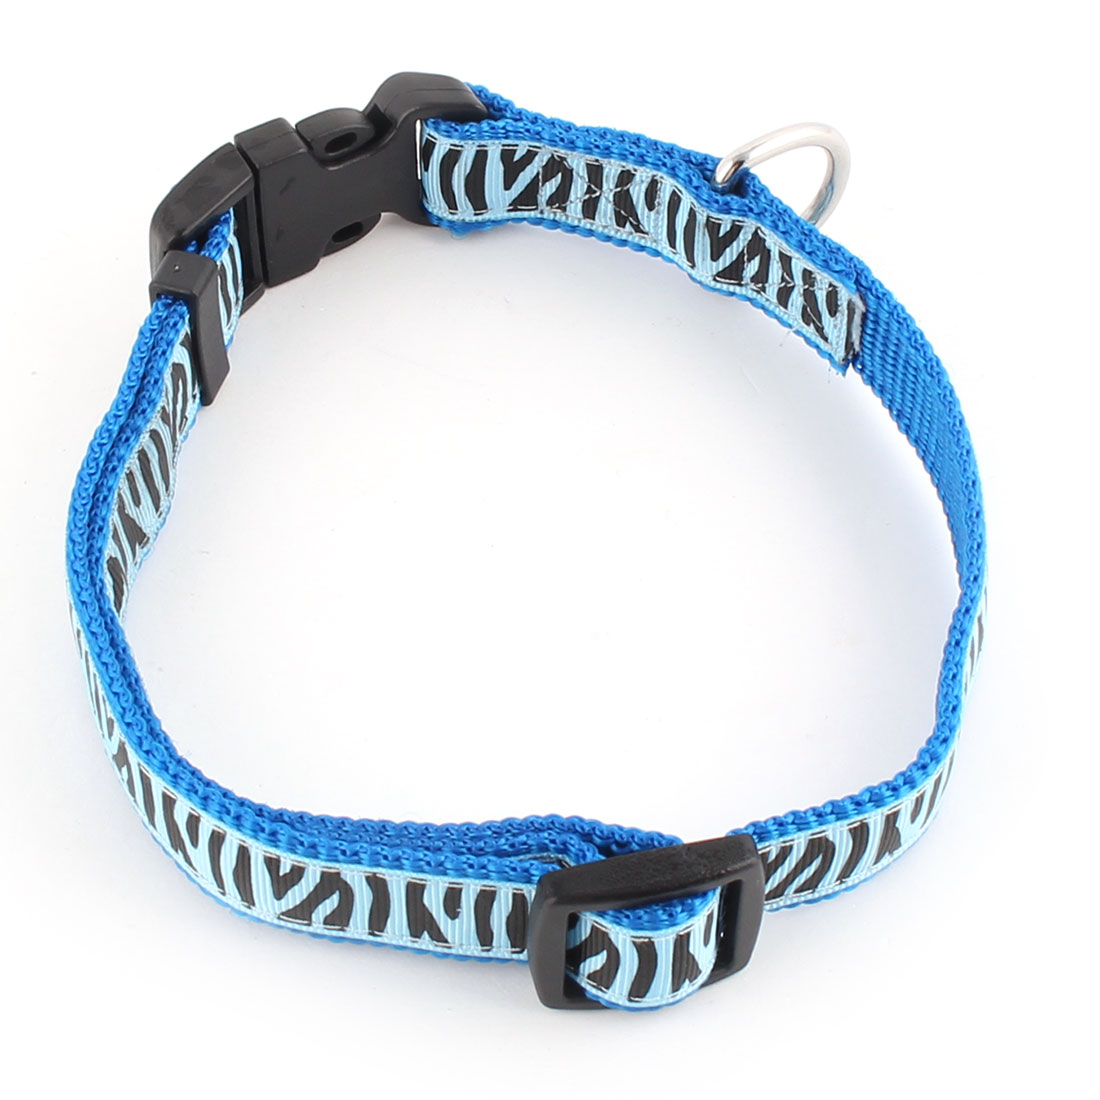 Pet Dog Nylon Zebra-stripe Pattern Adjustable Buckle Strap Belt Neck Collar Blue